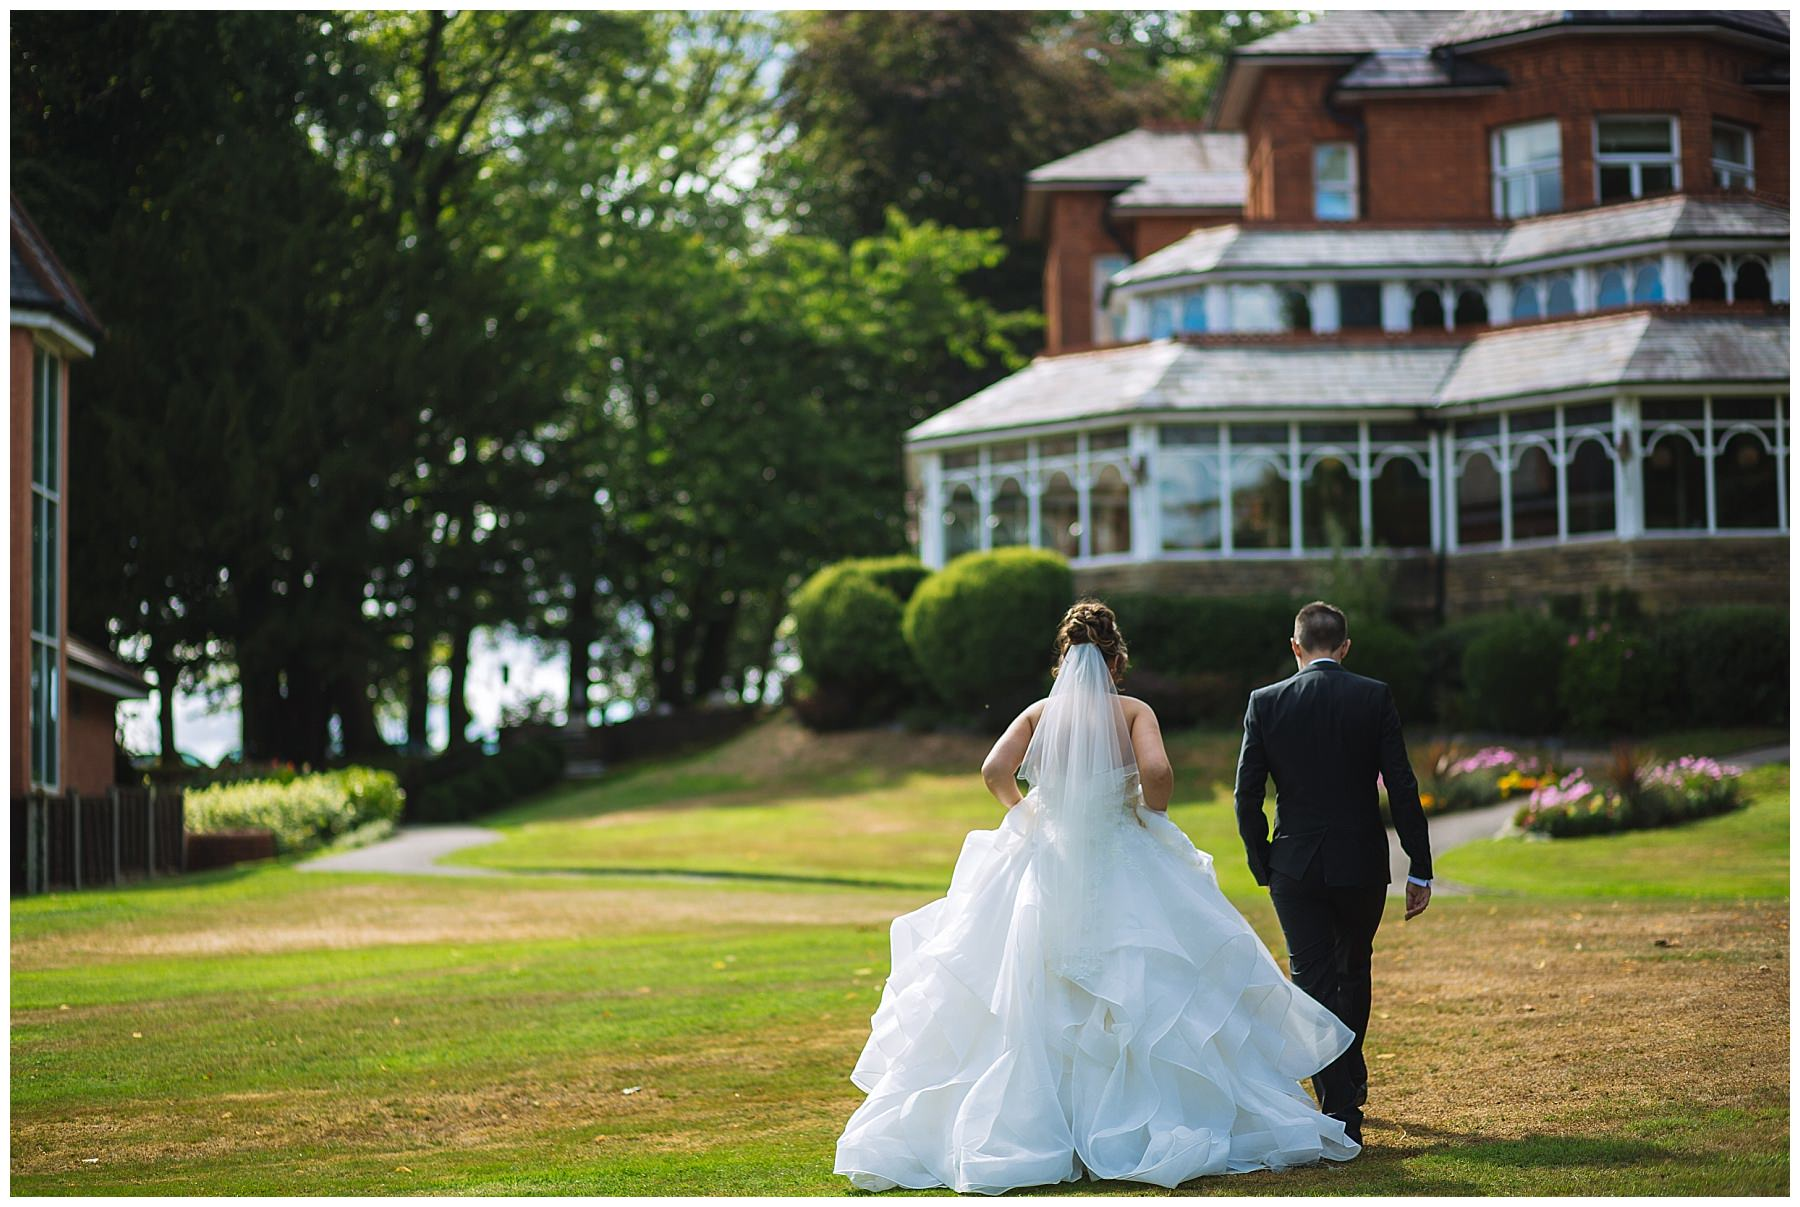 Married couple walk through the grounds of Kilhey Court